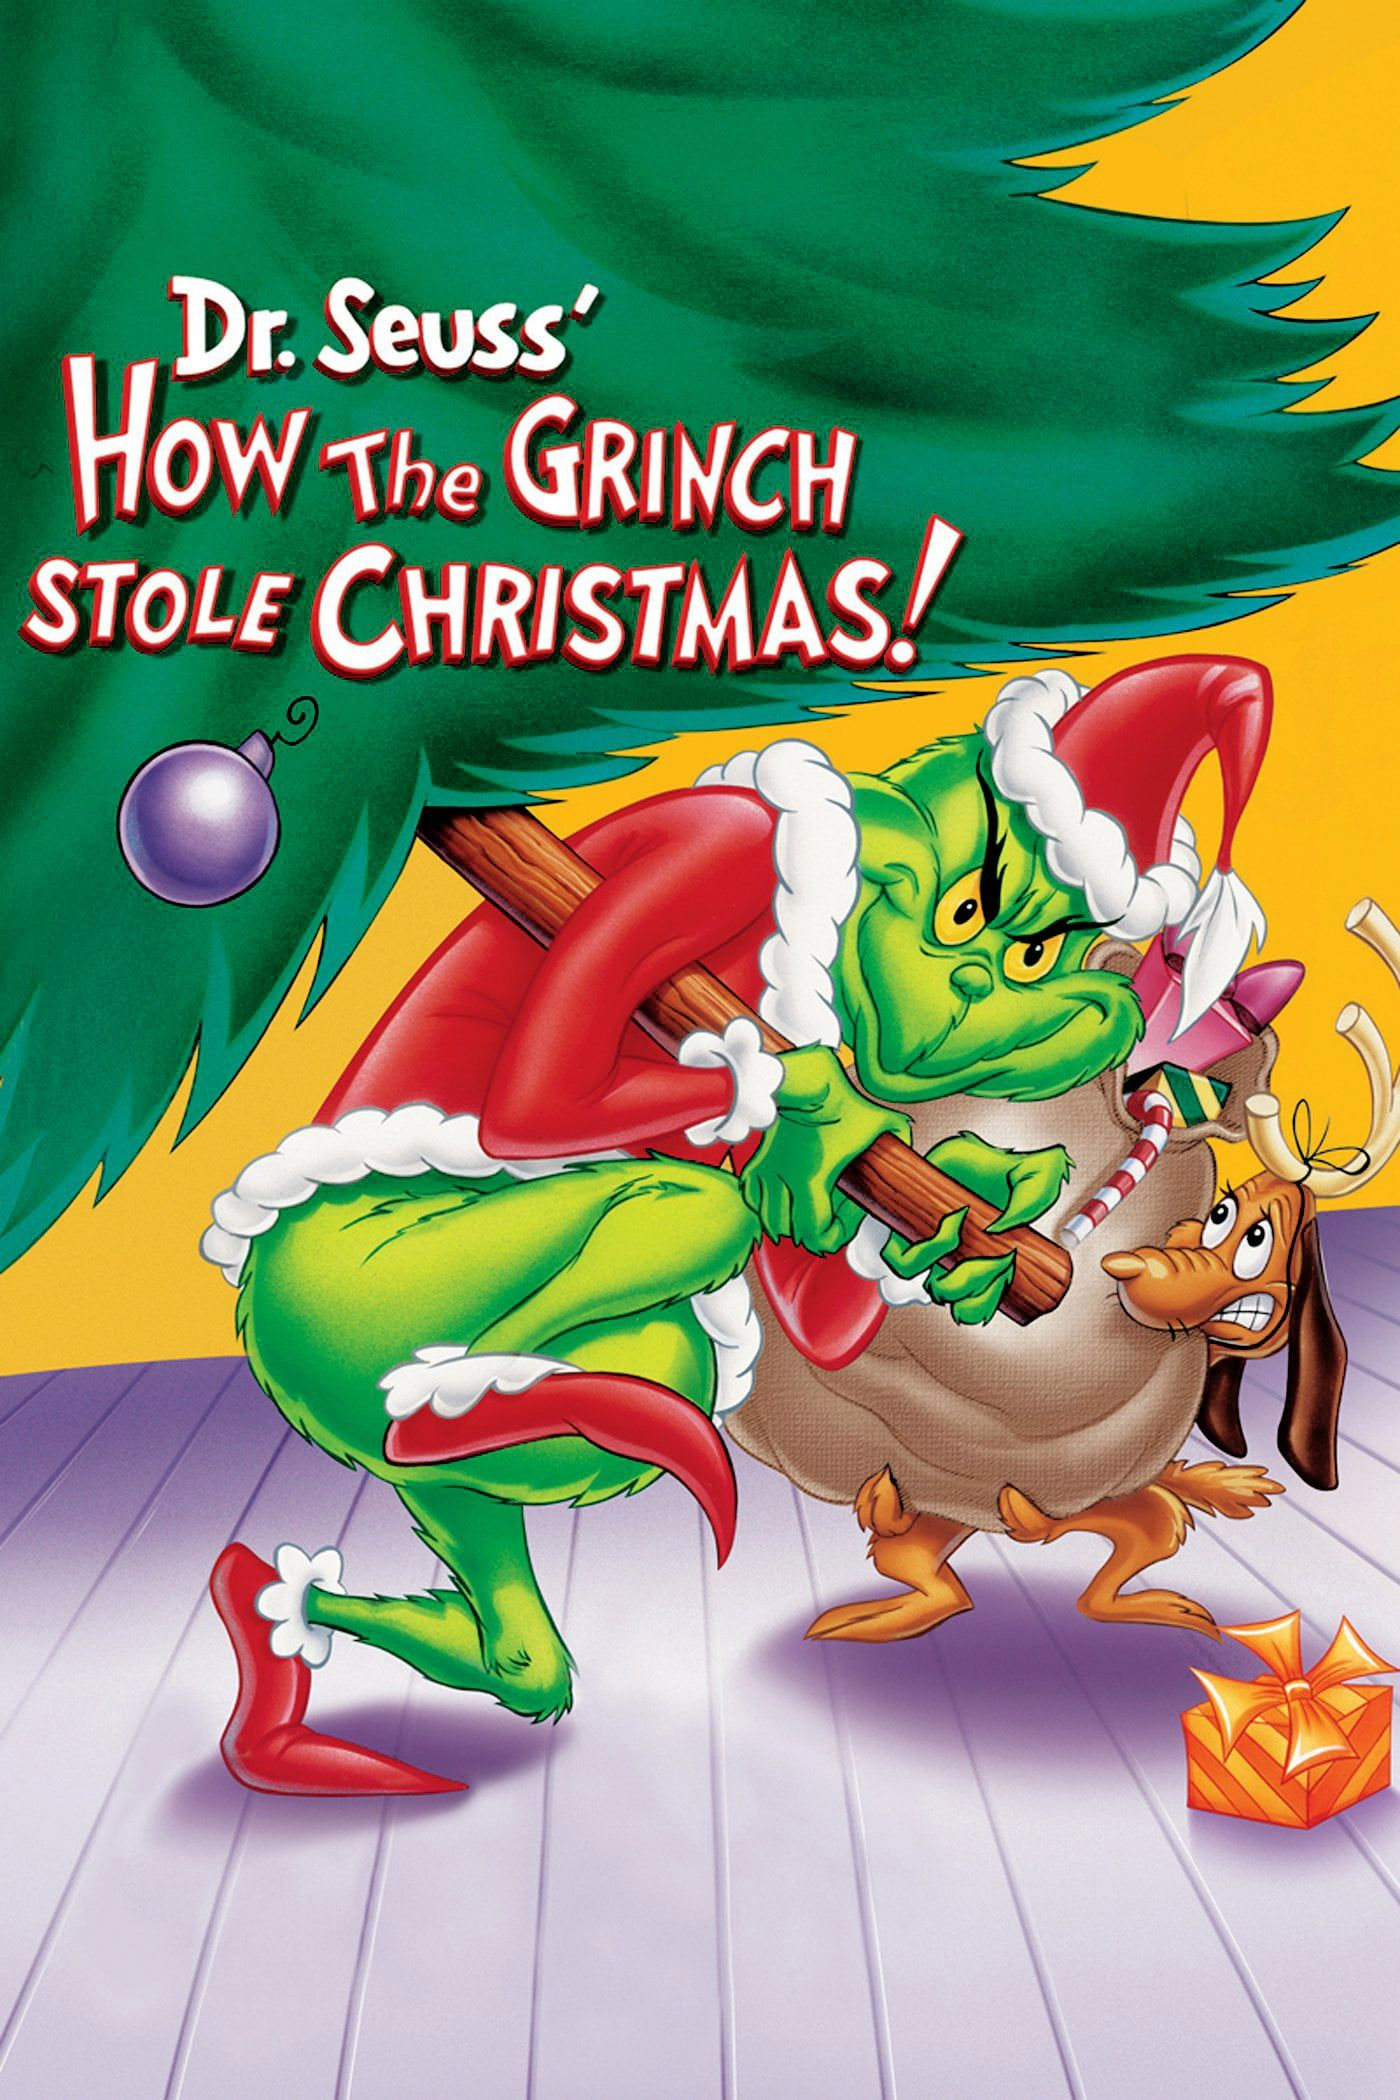 watch how the grinch stole christmas full hd movie online hd movies - How The Grinch Stole Christmas Stream